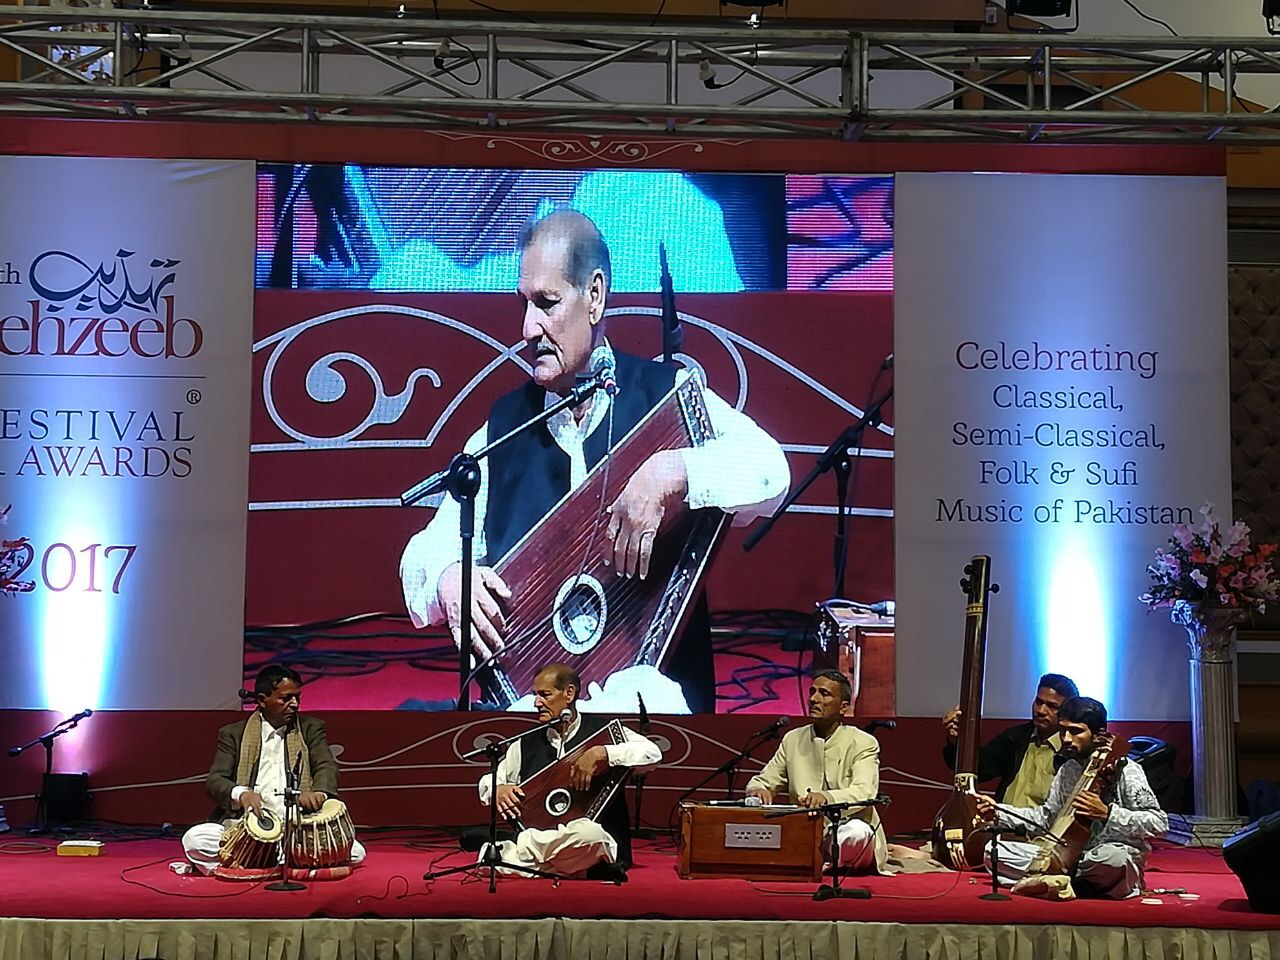 8th tehzeeb festival and awards honours art and artists